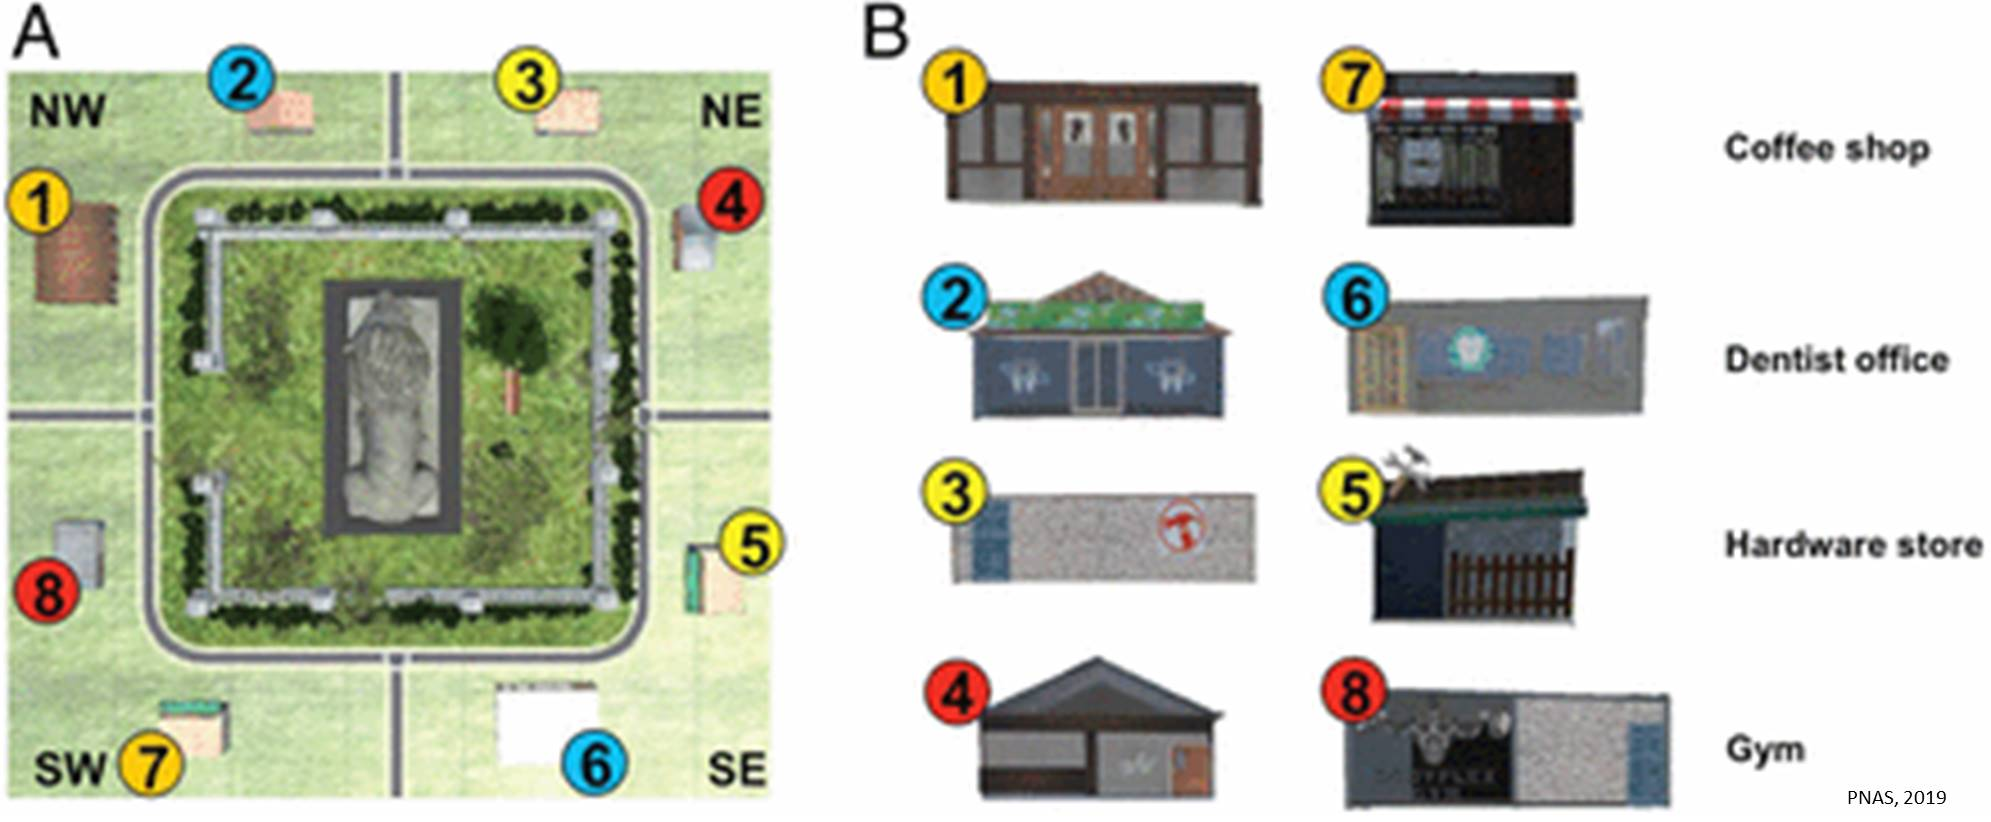 Virtual town model indicates distinct cortical regions have specialized role in navigation